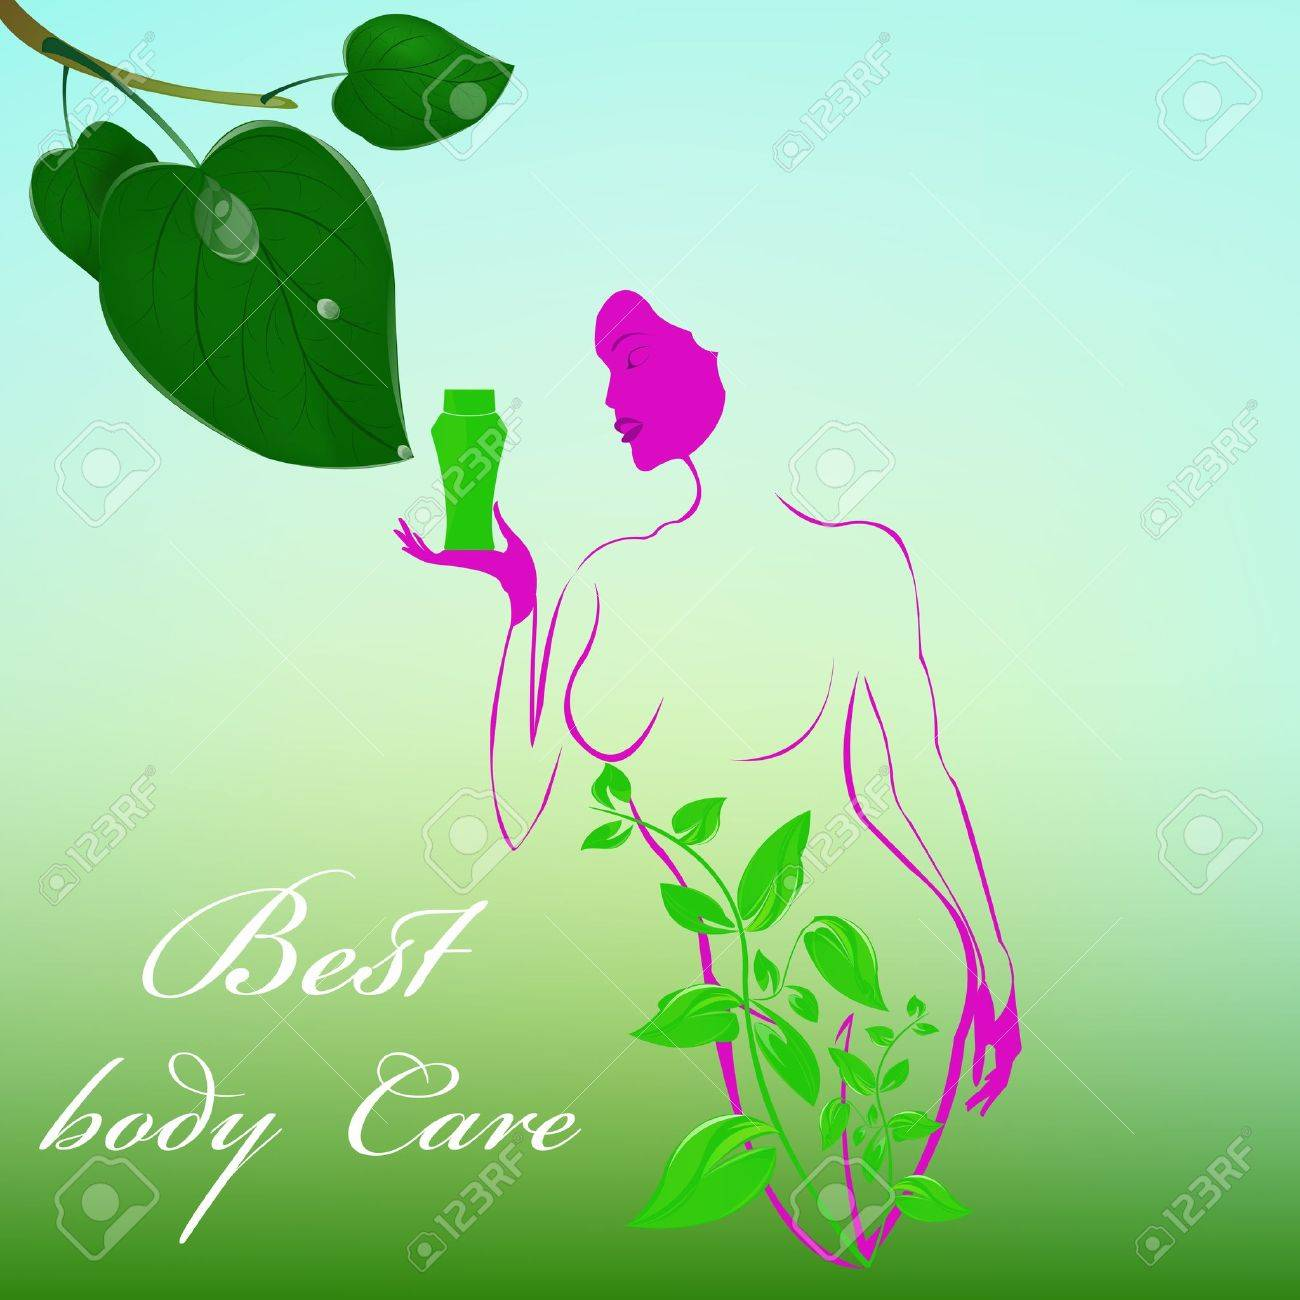 Best body care Healthy plants female medicine cosmetic Stock Vector - 17010135